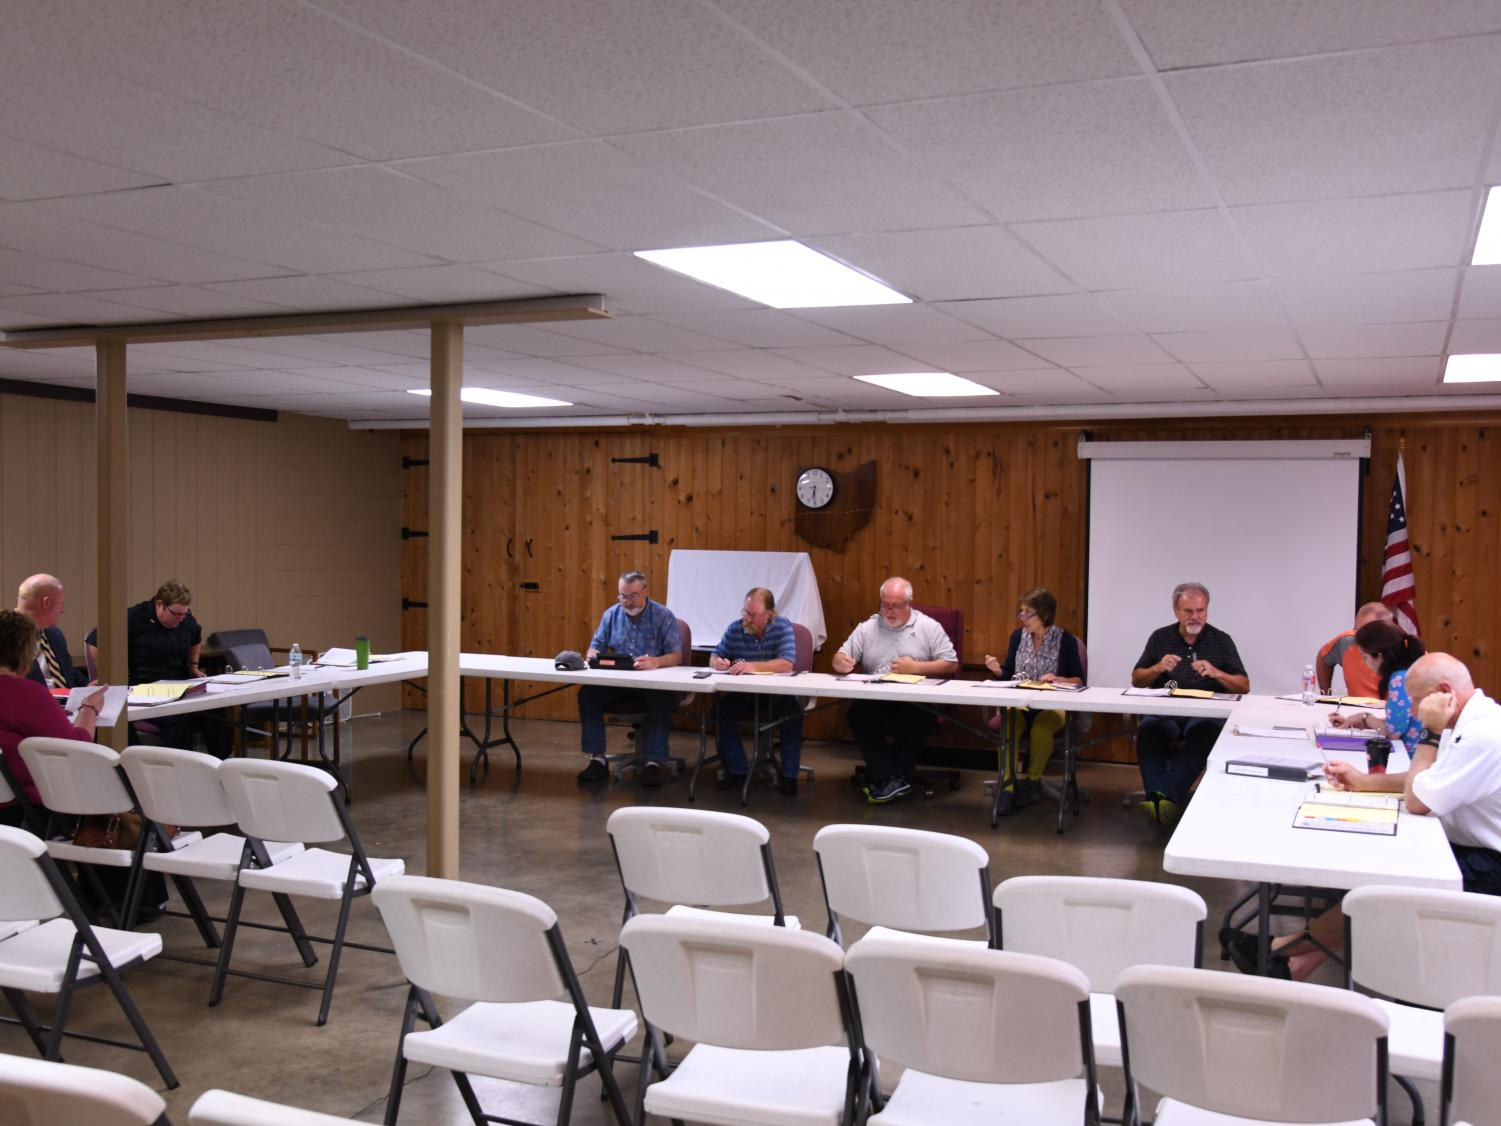 The New Concord village council met Monday night for their monthly breakdown of community matters.